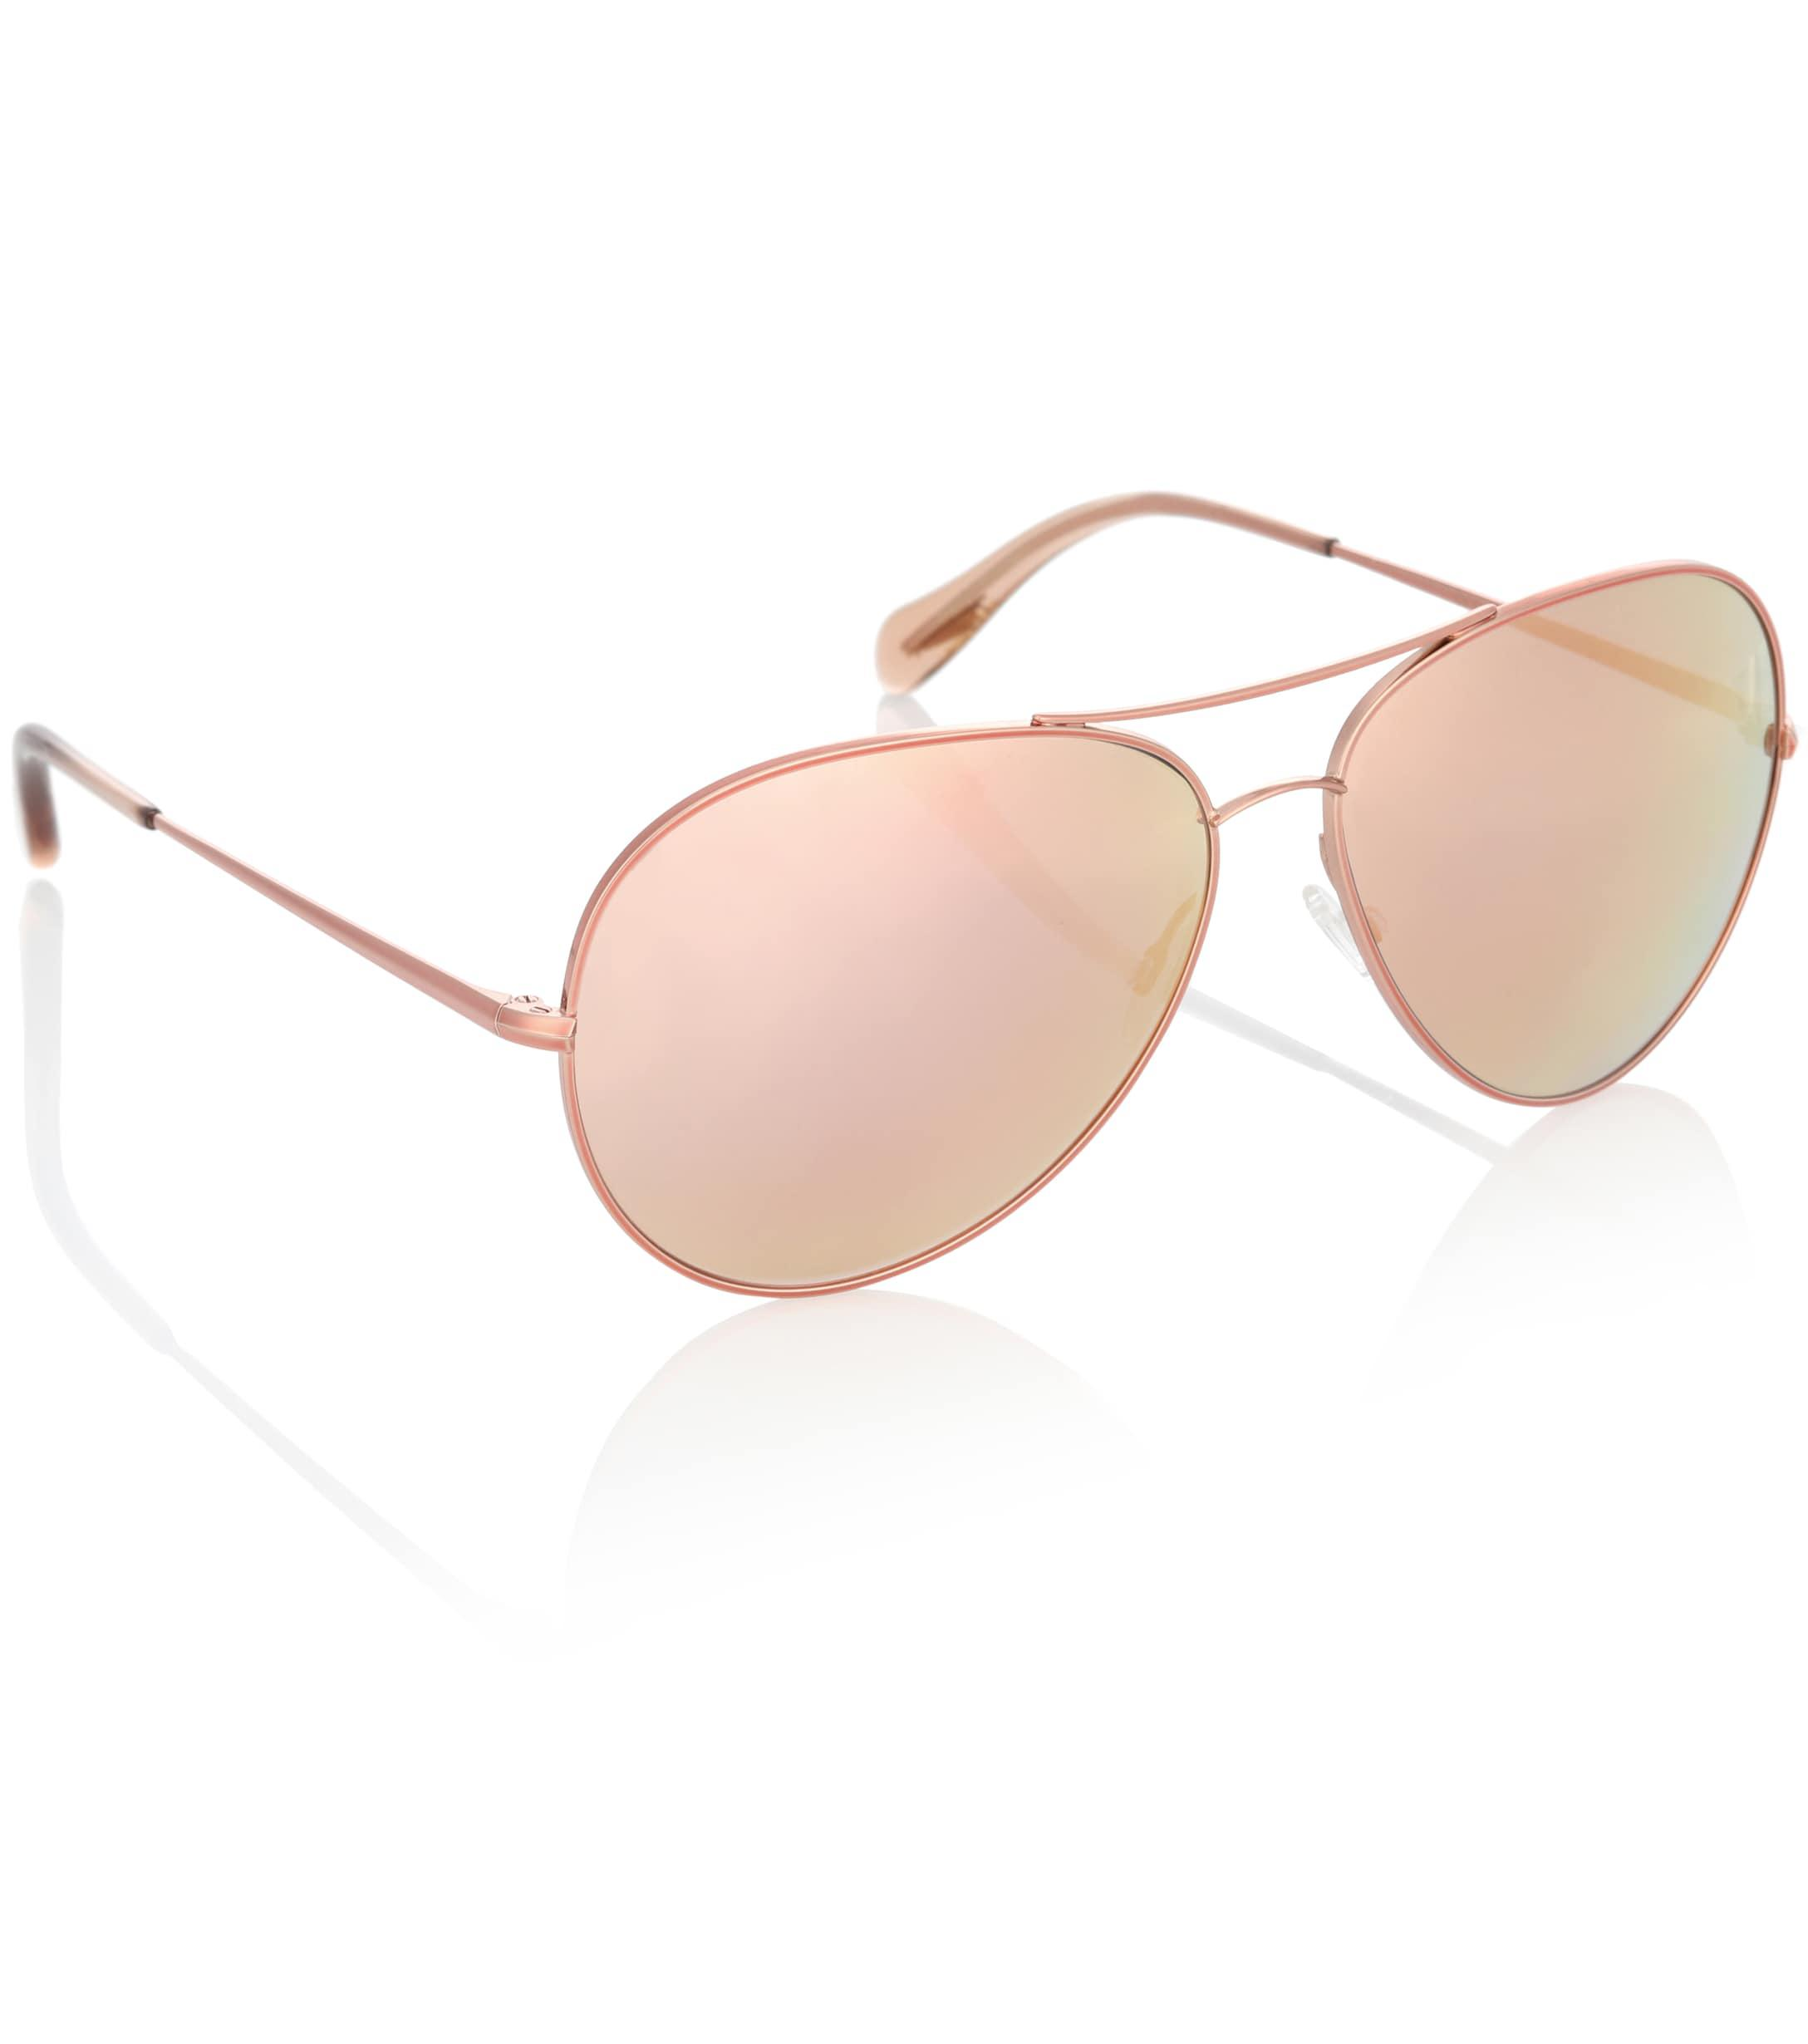 82a9aff08 Oliver Peoples - Metallic Sayer 63 Mirrored Aviator Sunglasses - Lyst. View  fullscreen